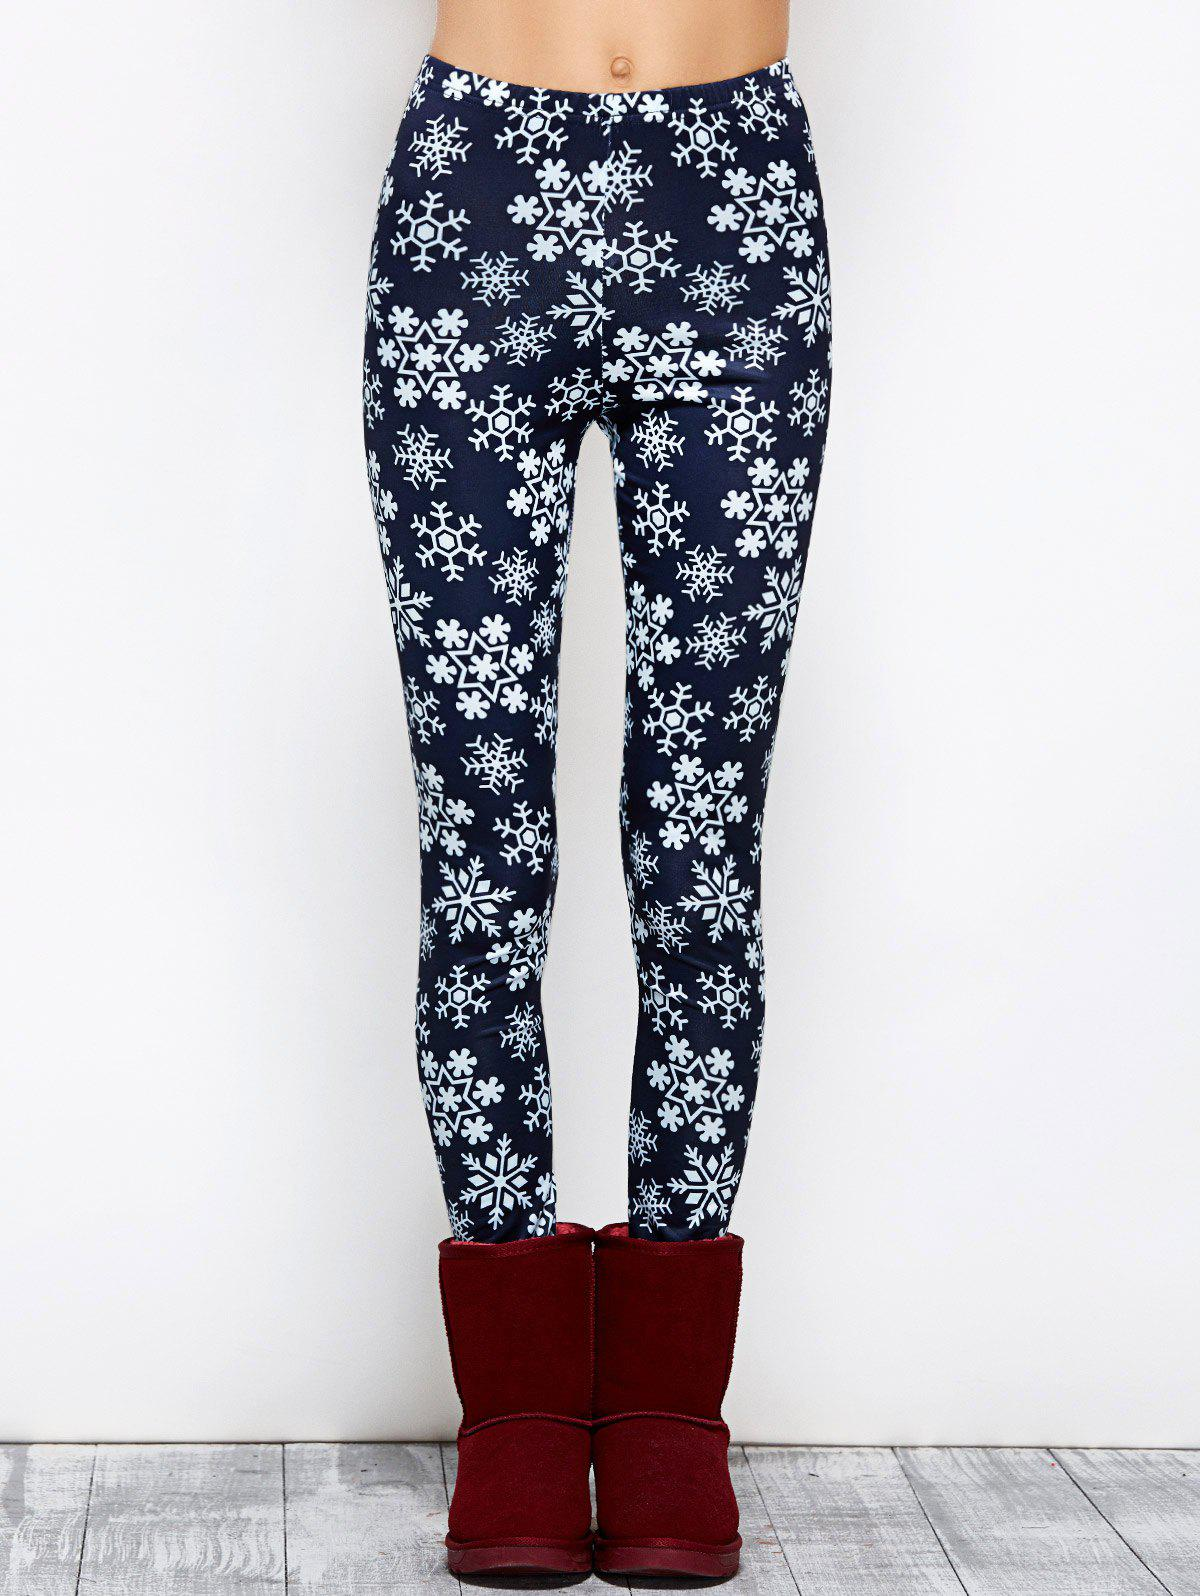 Snowflake Print Stretchy Christmas LeggingsWOMEN<br><br>Size: L; Color: PURPLISH BLUE; Style: Fashion; Material: Polyester; Waist Type: Mid; Pattern Type: Print; Elasticity: Elastic; Weight: 0.250kg; Package Contents: 1 x Leggings;